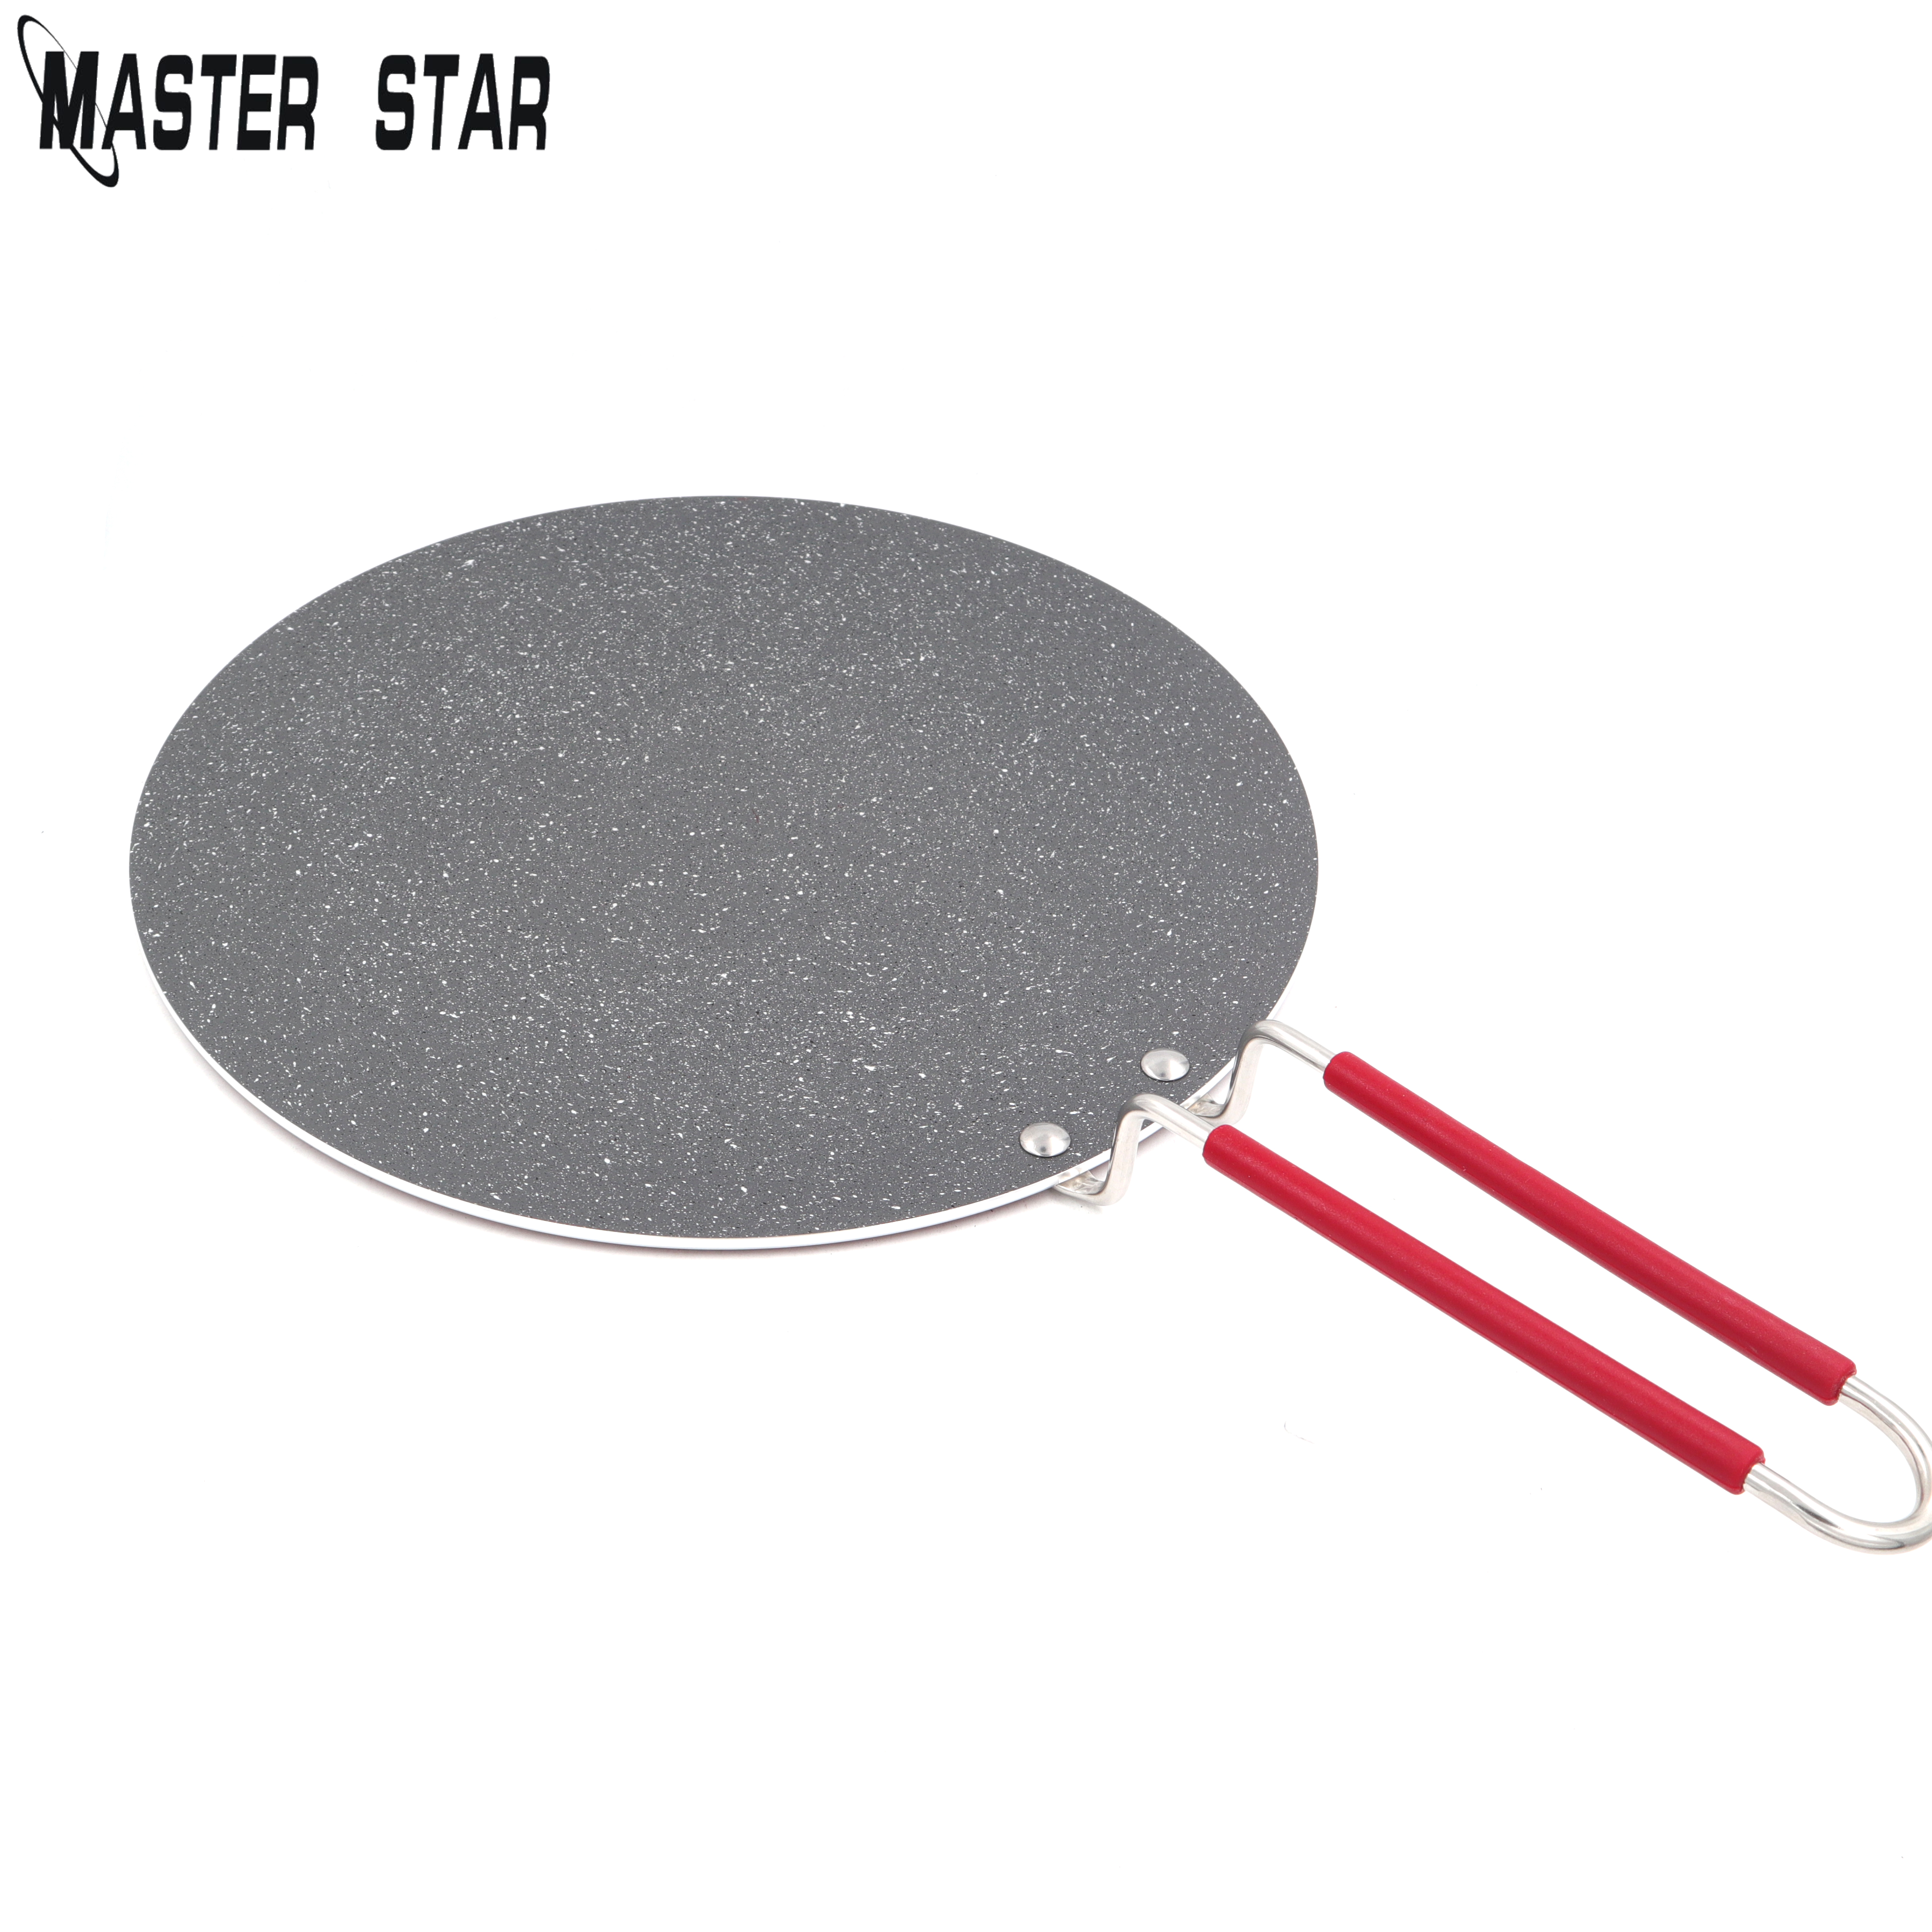 Master Star 34cm Flat Crepe Pan Arabian Bread Chapatis Pancakes Large Non-stick Frying Pan For Naan Bread Gas Cooker 1